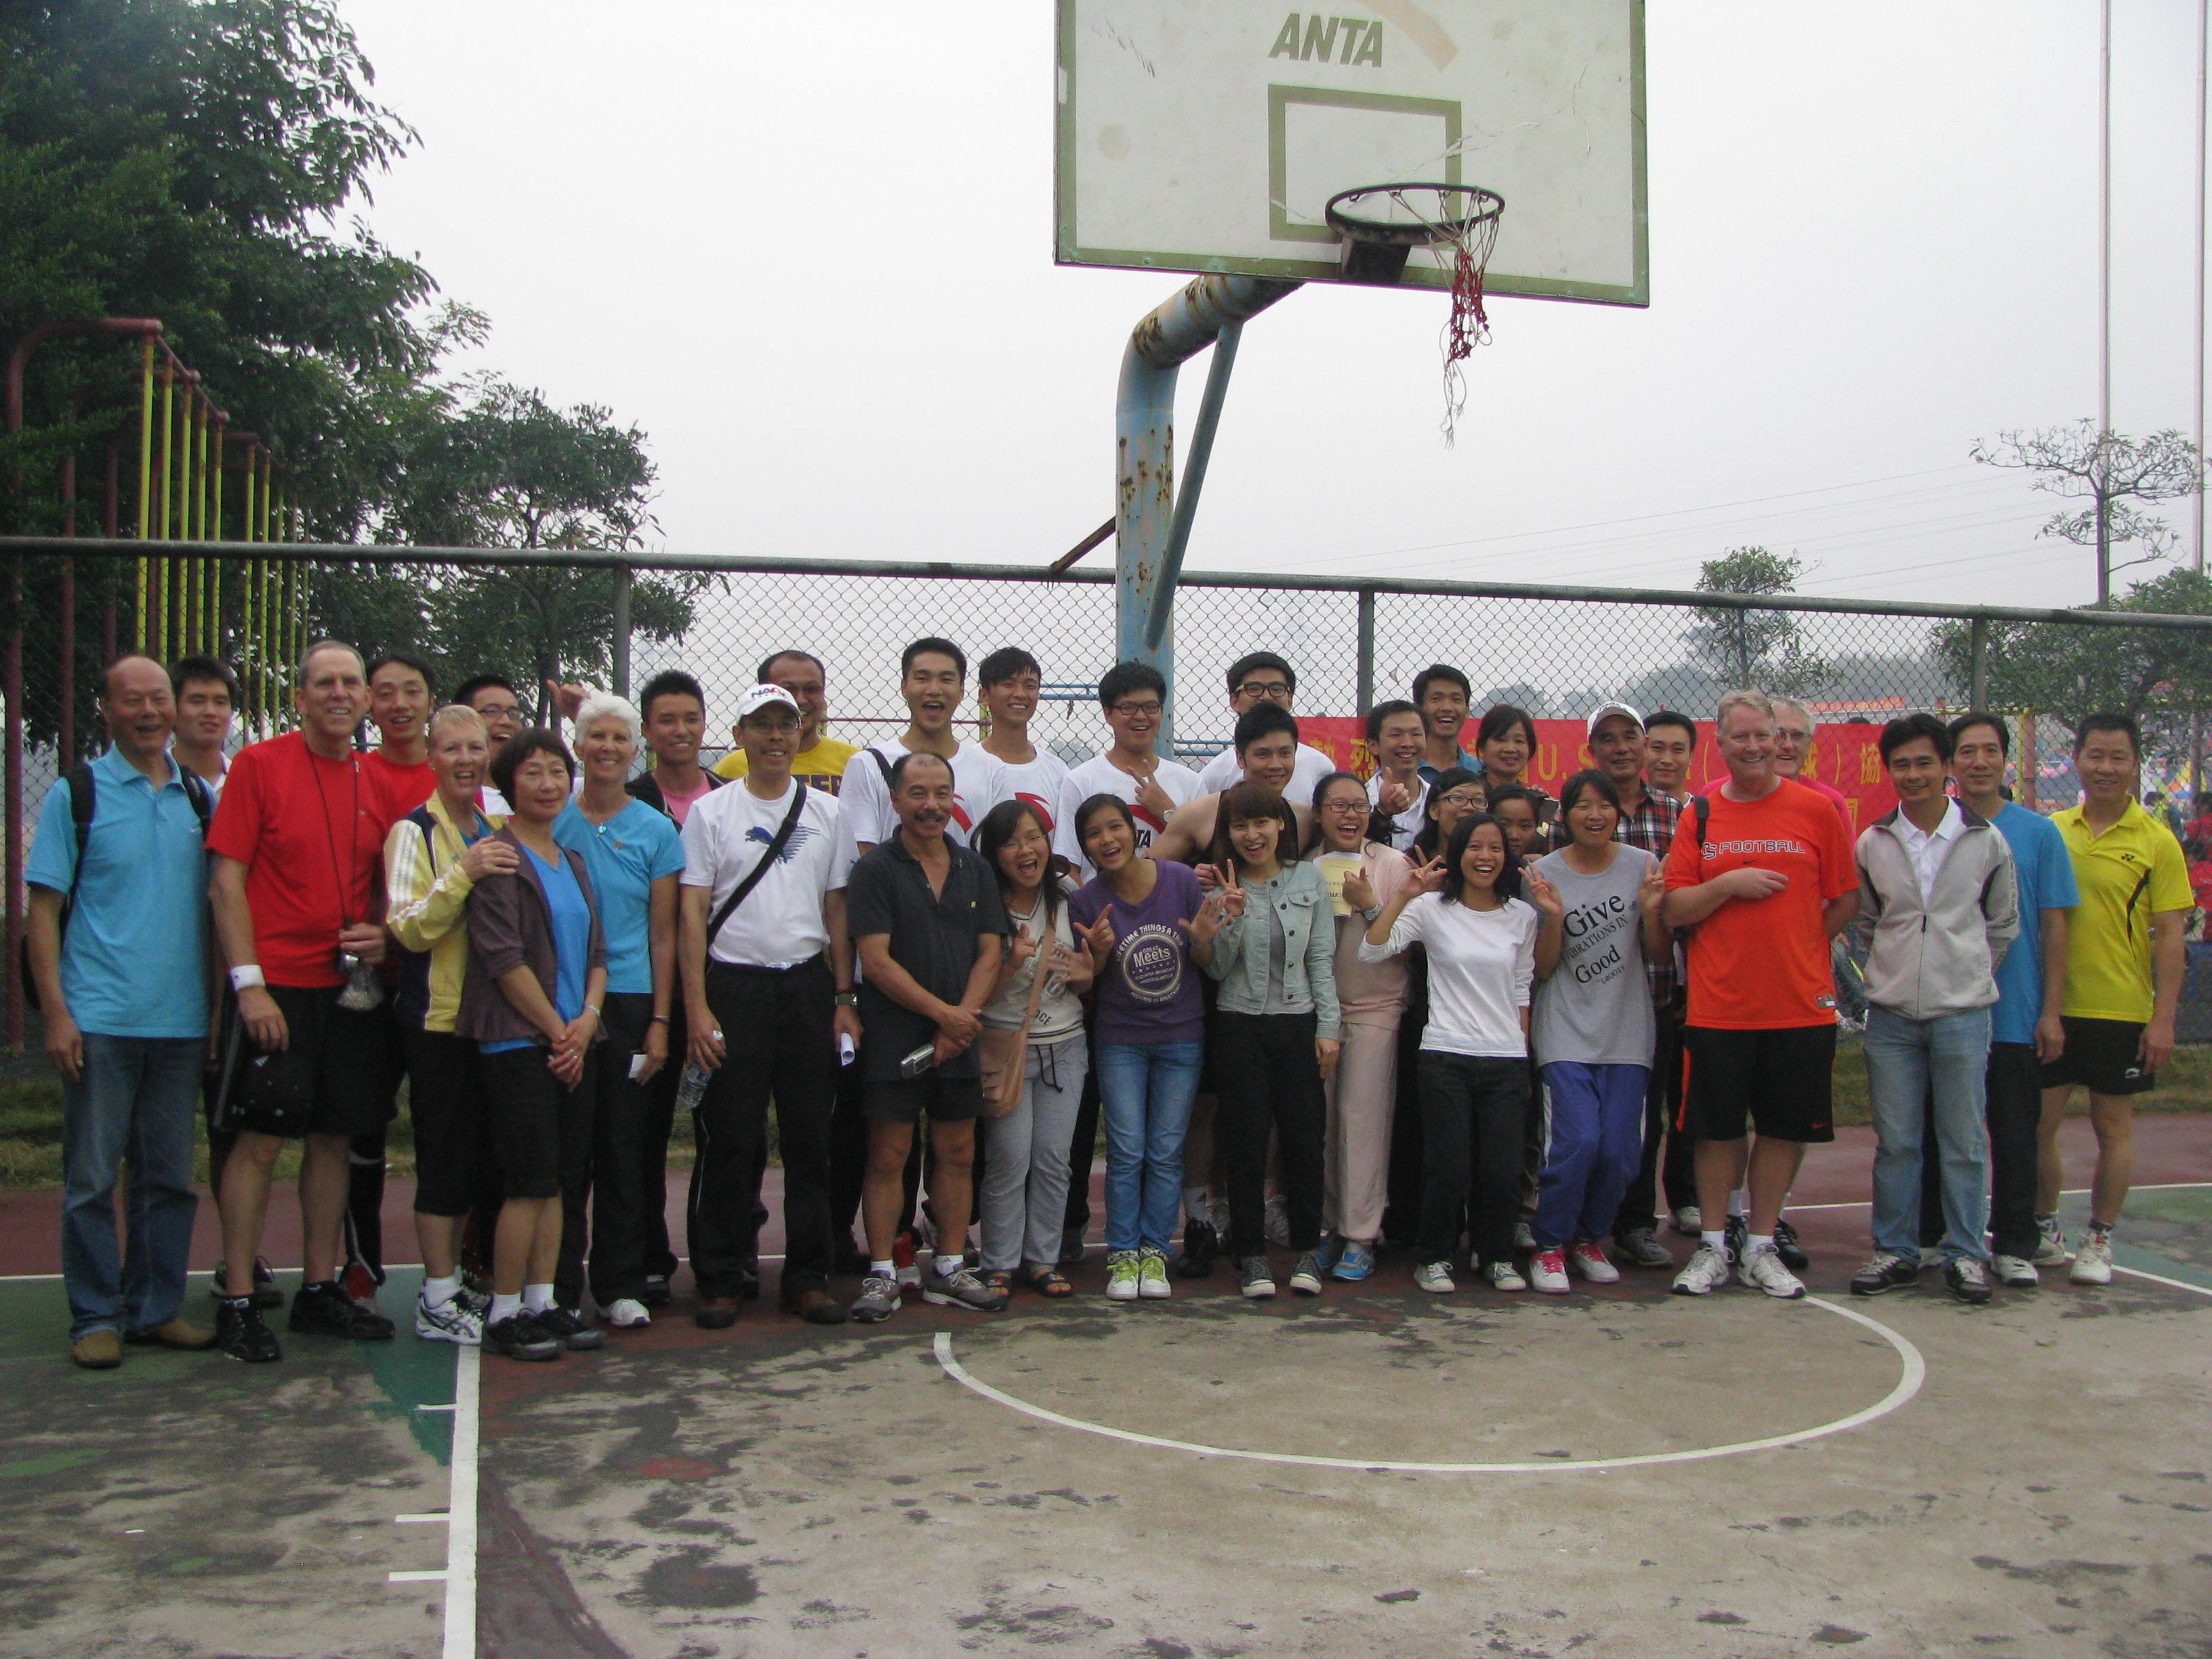 Our group with students from Guangdong Industrial Technical College